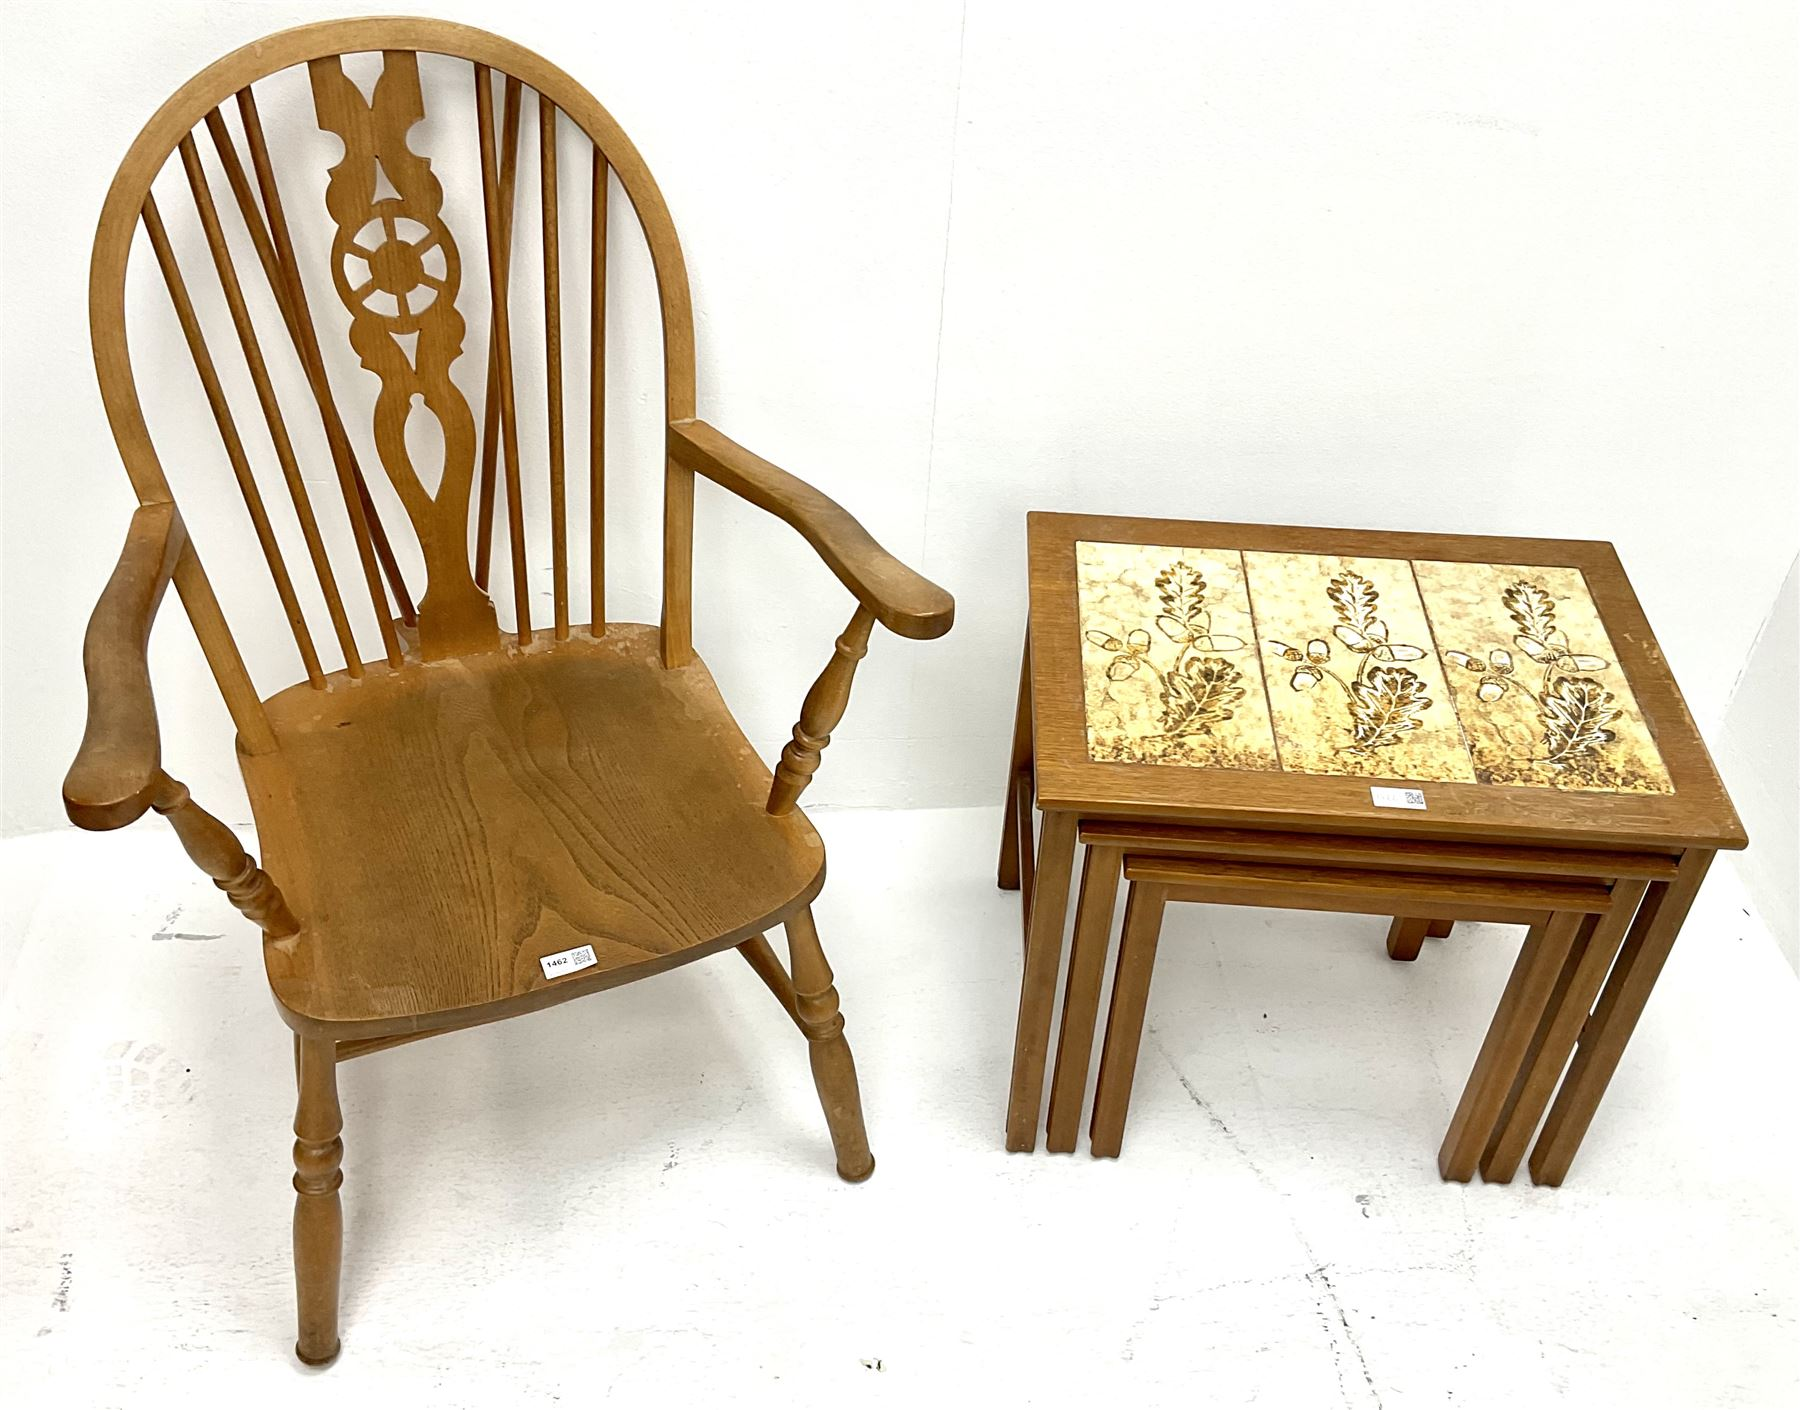 Beech and elm Wheel back carver chair (W60cm) and nest of tiled tables (2) - Image 2 of 2